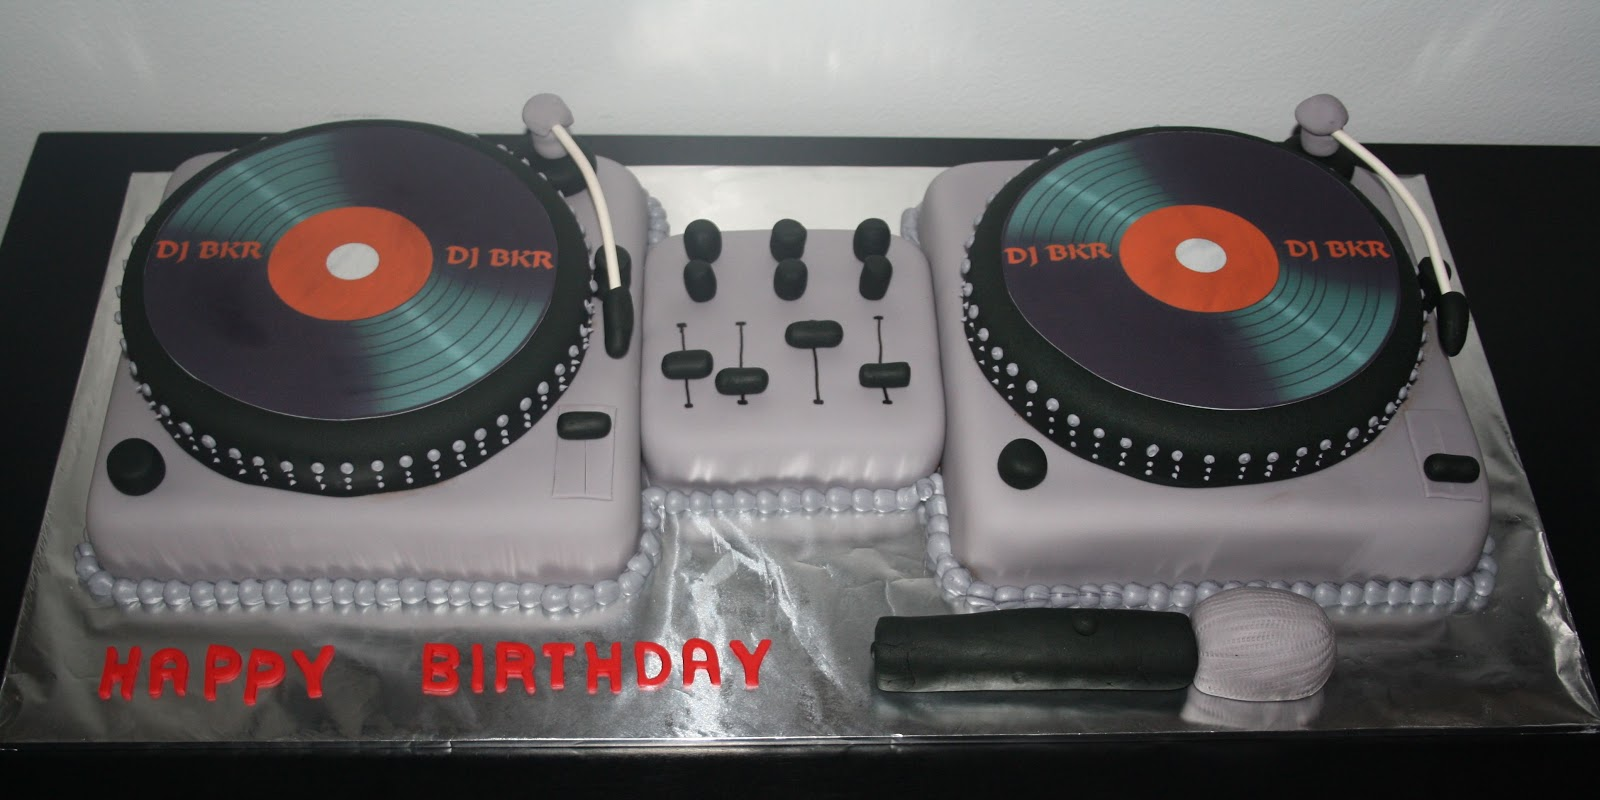 Swell 10 Dj Turntables Birthday Cakes Photo Dj Turntable Birthday Cake Birthday Cards Printable Benkemecafe Filternl